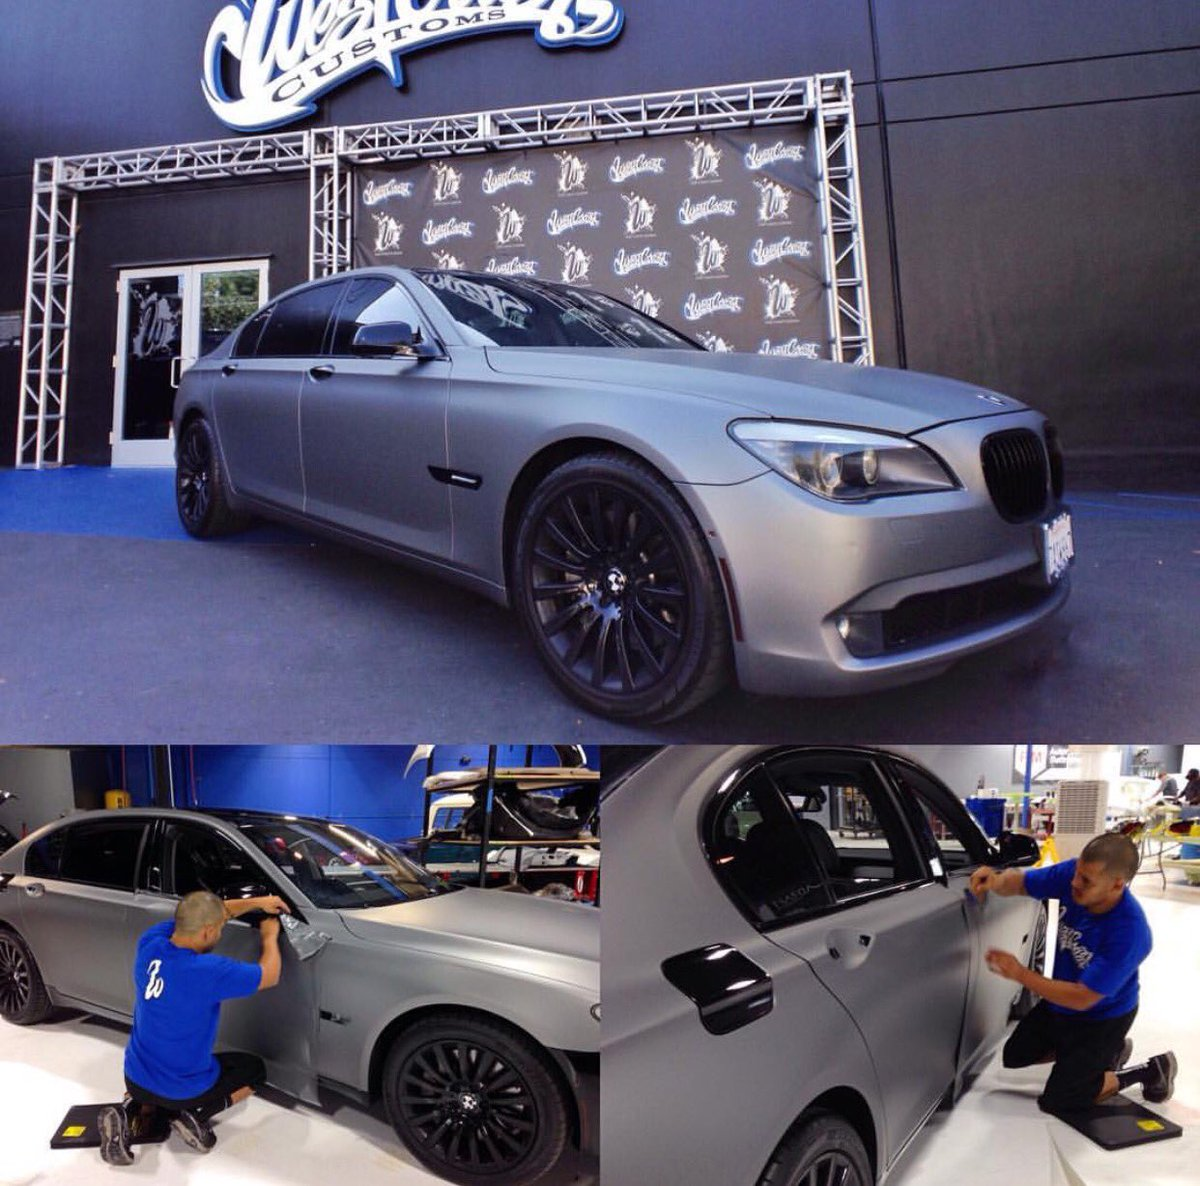 West Coast Customs On Twitter BMW 750 Series Wrapped In Gunmetal With Oracle Halos WCC WCCBurbank WestCoastCustoms CustomCars 7series